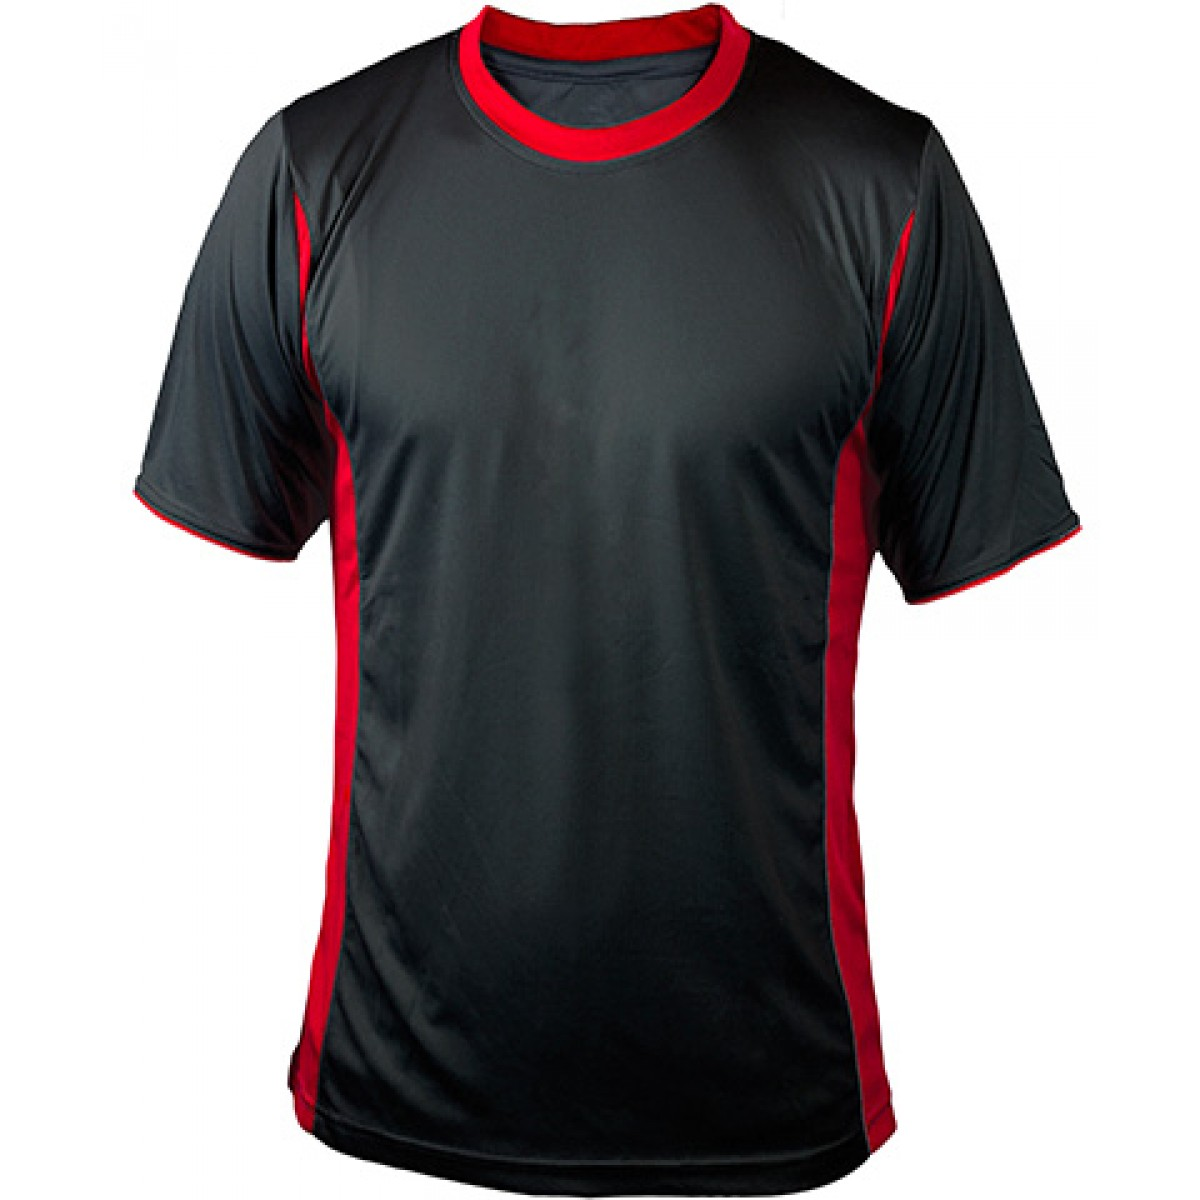 Black Short Sleeves Performance With Red Side Insert-Black-YL